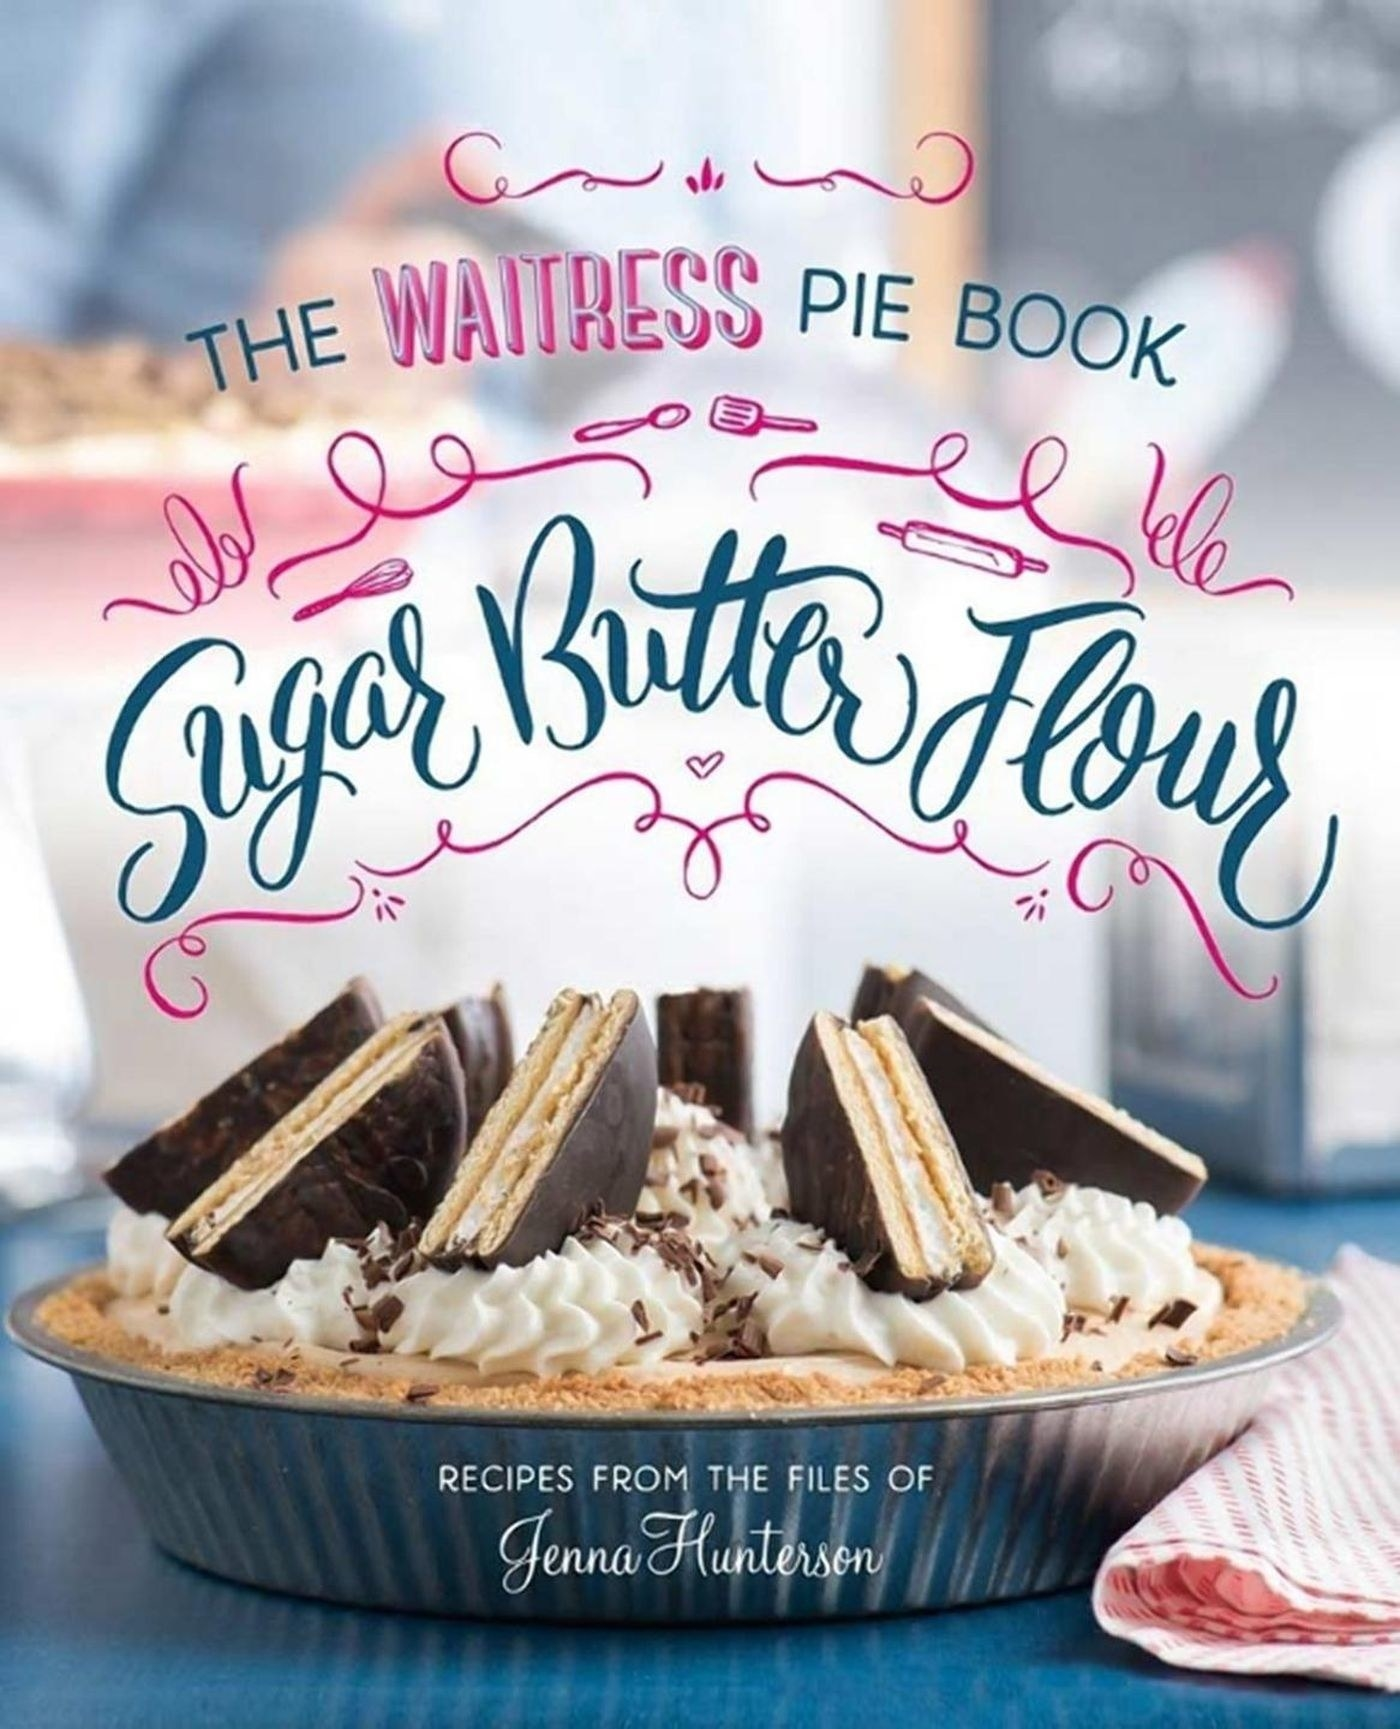 The cover of the book with a beautiful pie on it